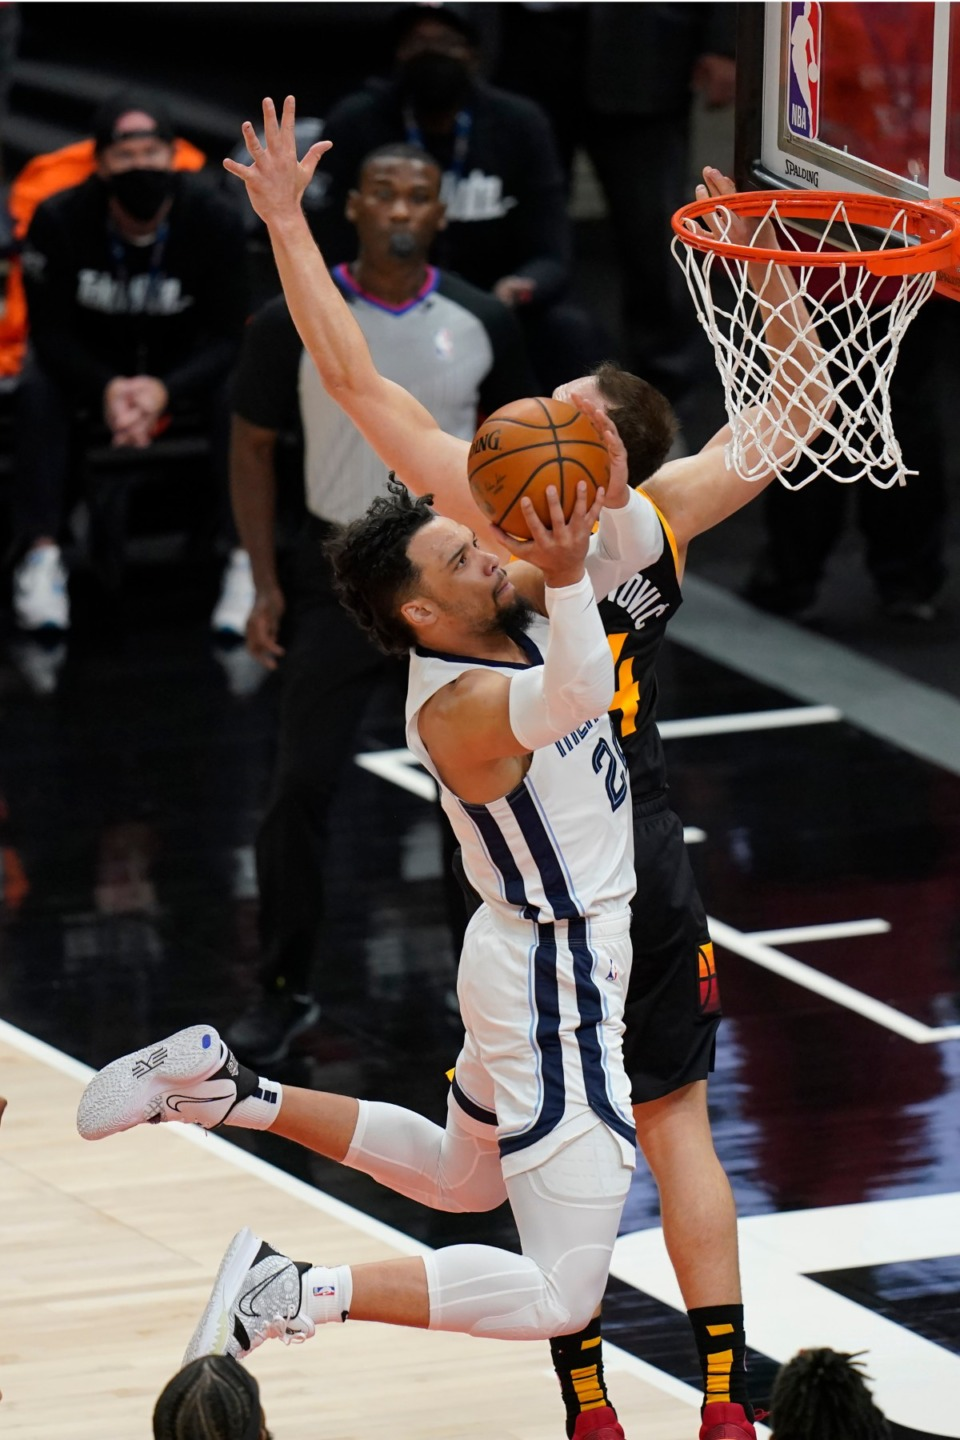 <strong>Grizzlies forward Dillon Brooks (24) goes to the basket as Utah Jazz forward Bojan Bogdanovic, rear, defends during Game 2 of their NBA basketball first-round playoff series Wednesday, May 26, 2021, in Salt Lake City.</strong> (Rick Bowmer/AP)